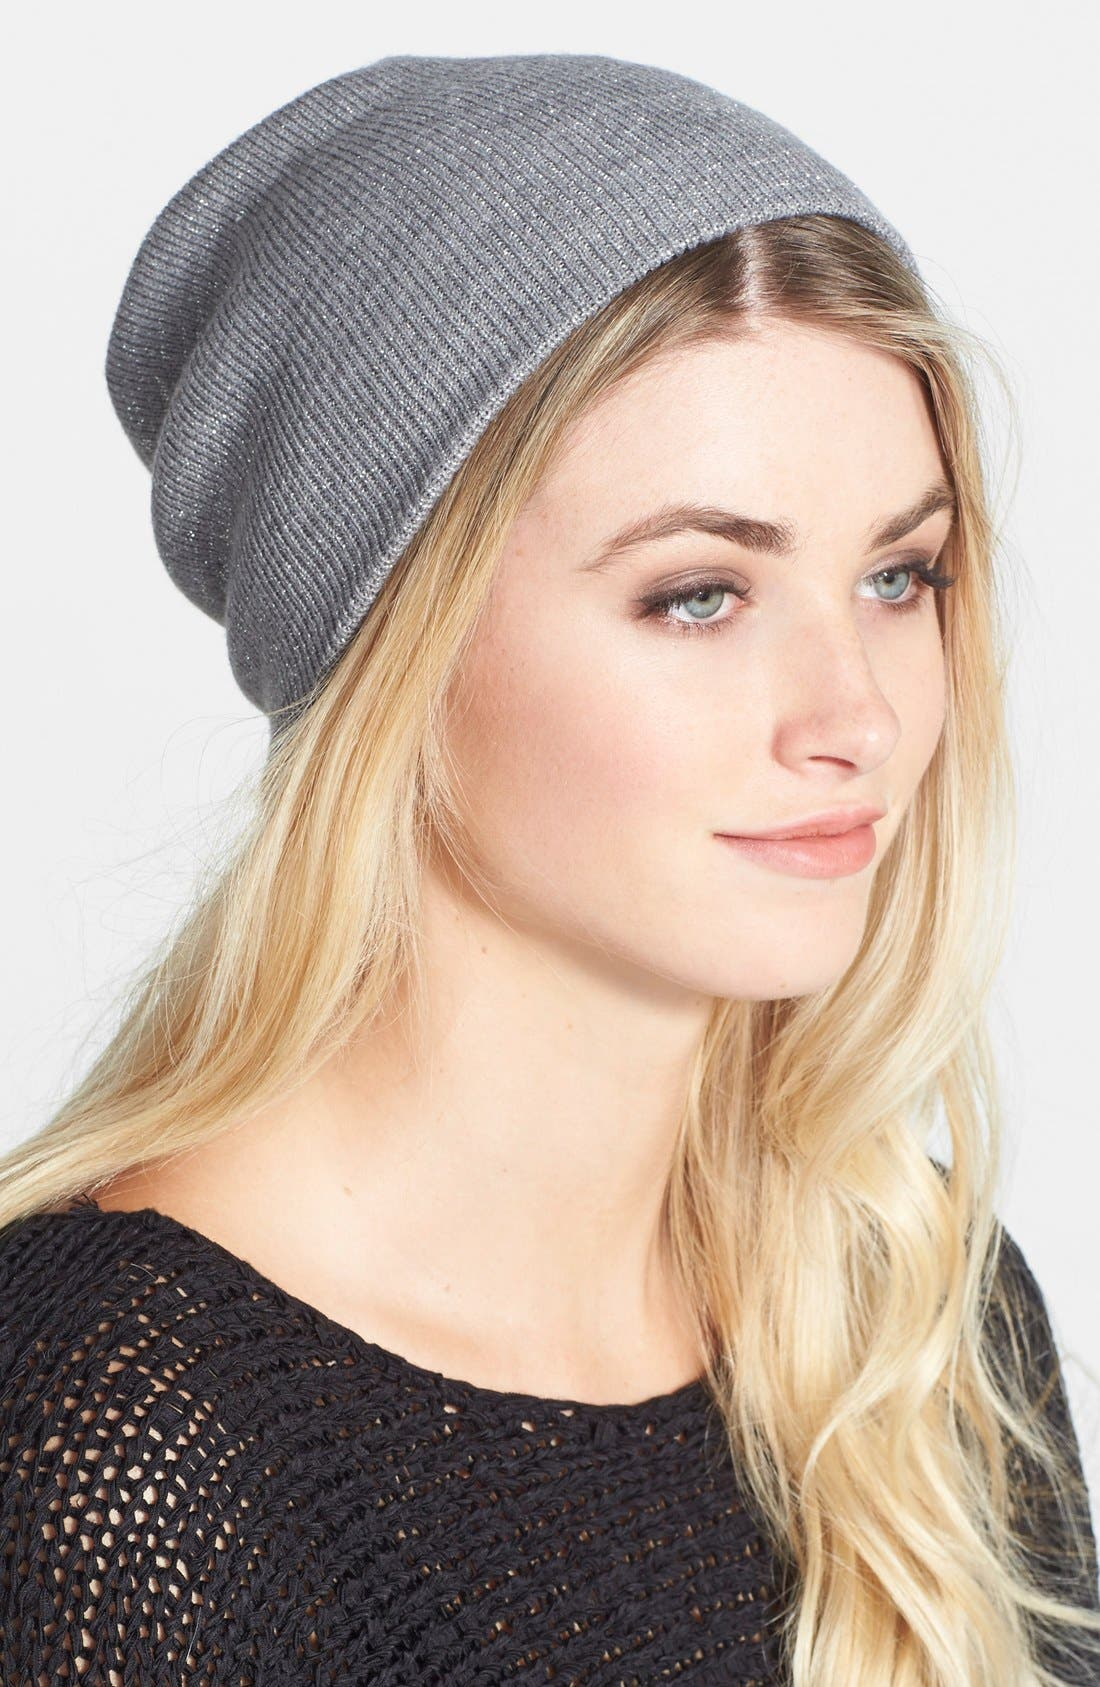 Main Image - Phase 3 'Stand Up' Sparkle Beanie